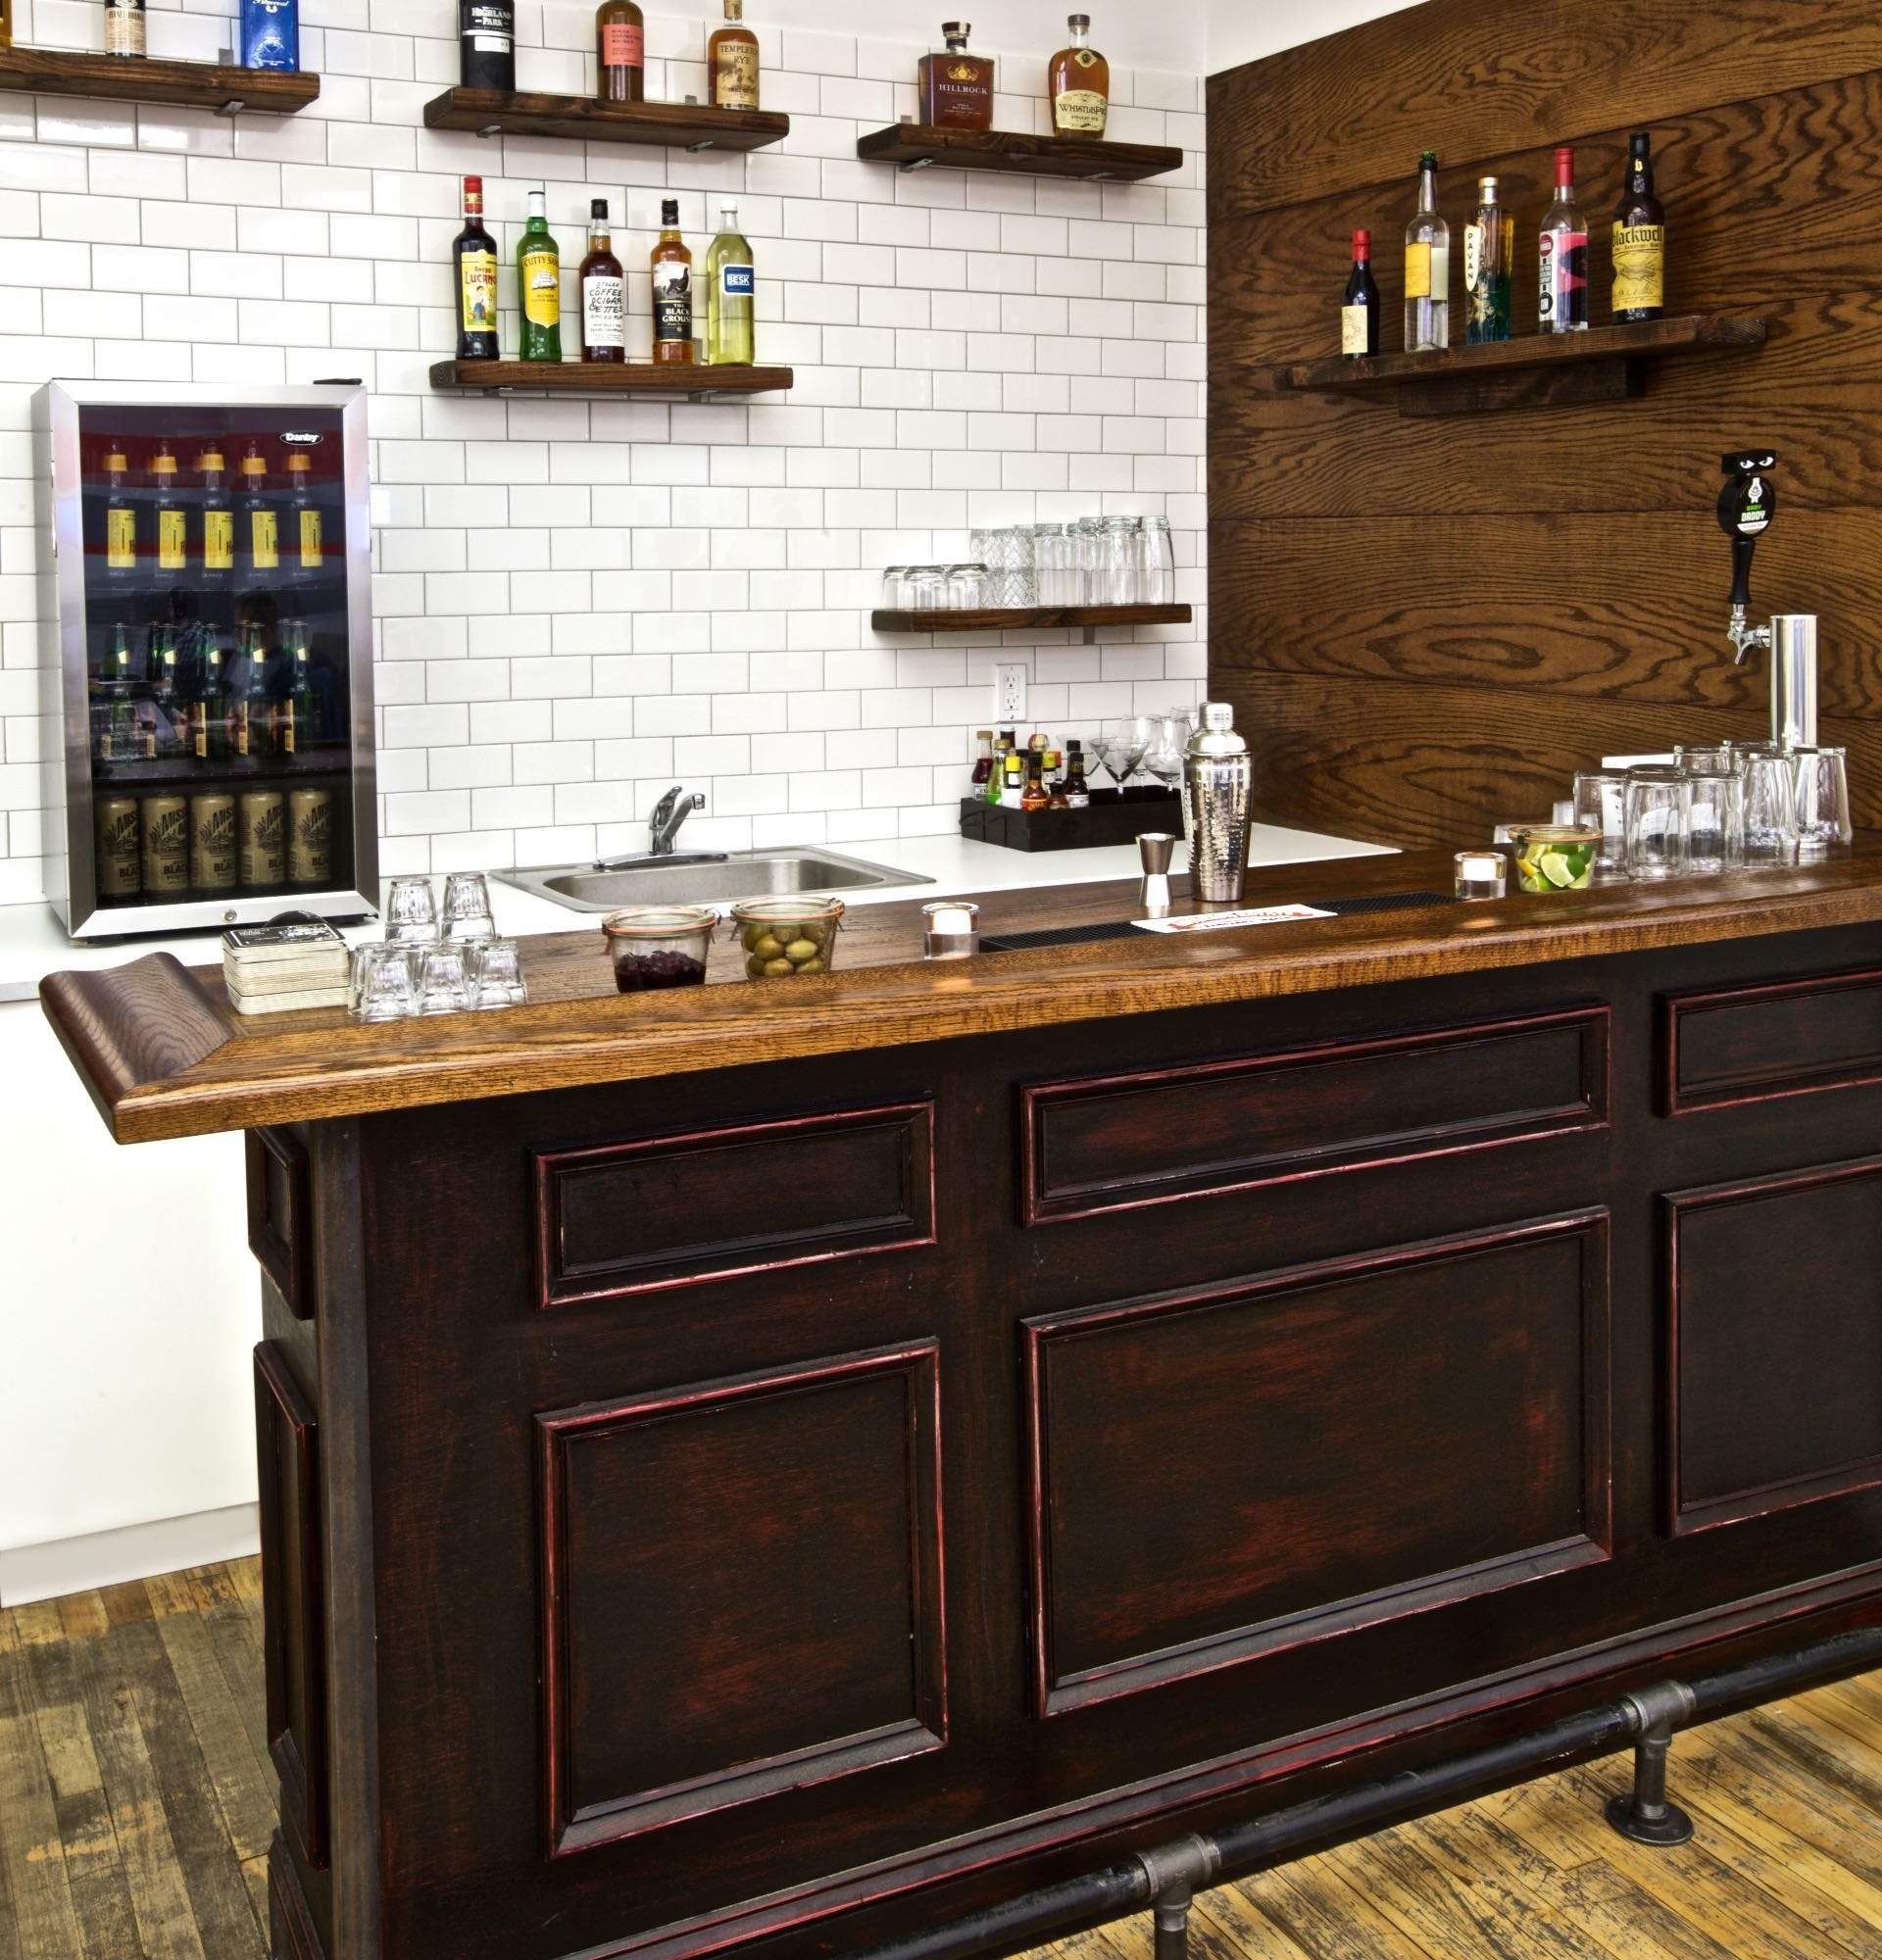 How To Build A Home Bar: A Step By Step Guide